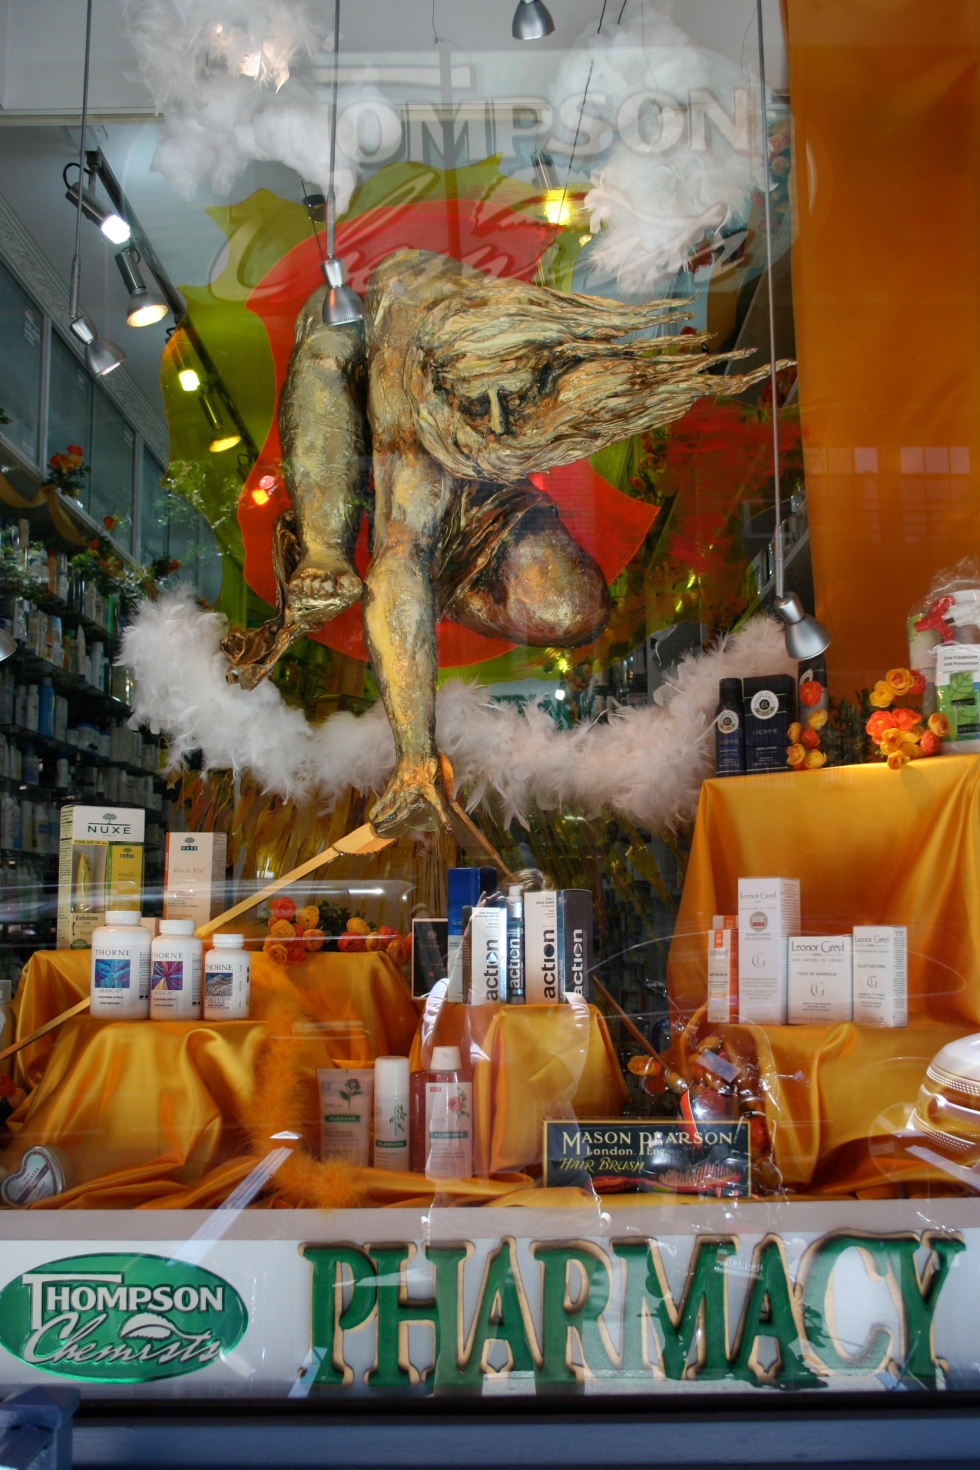 a picture of a sculptured replica of Blake's Ancient of Days that was on display at Thompson Chemists